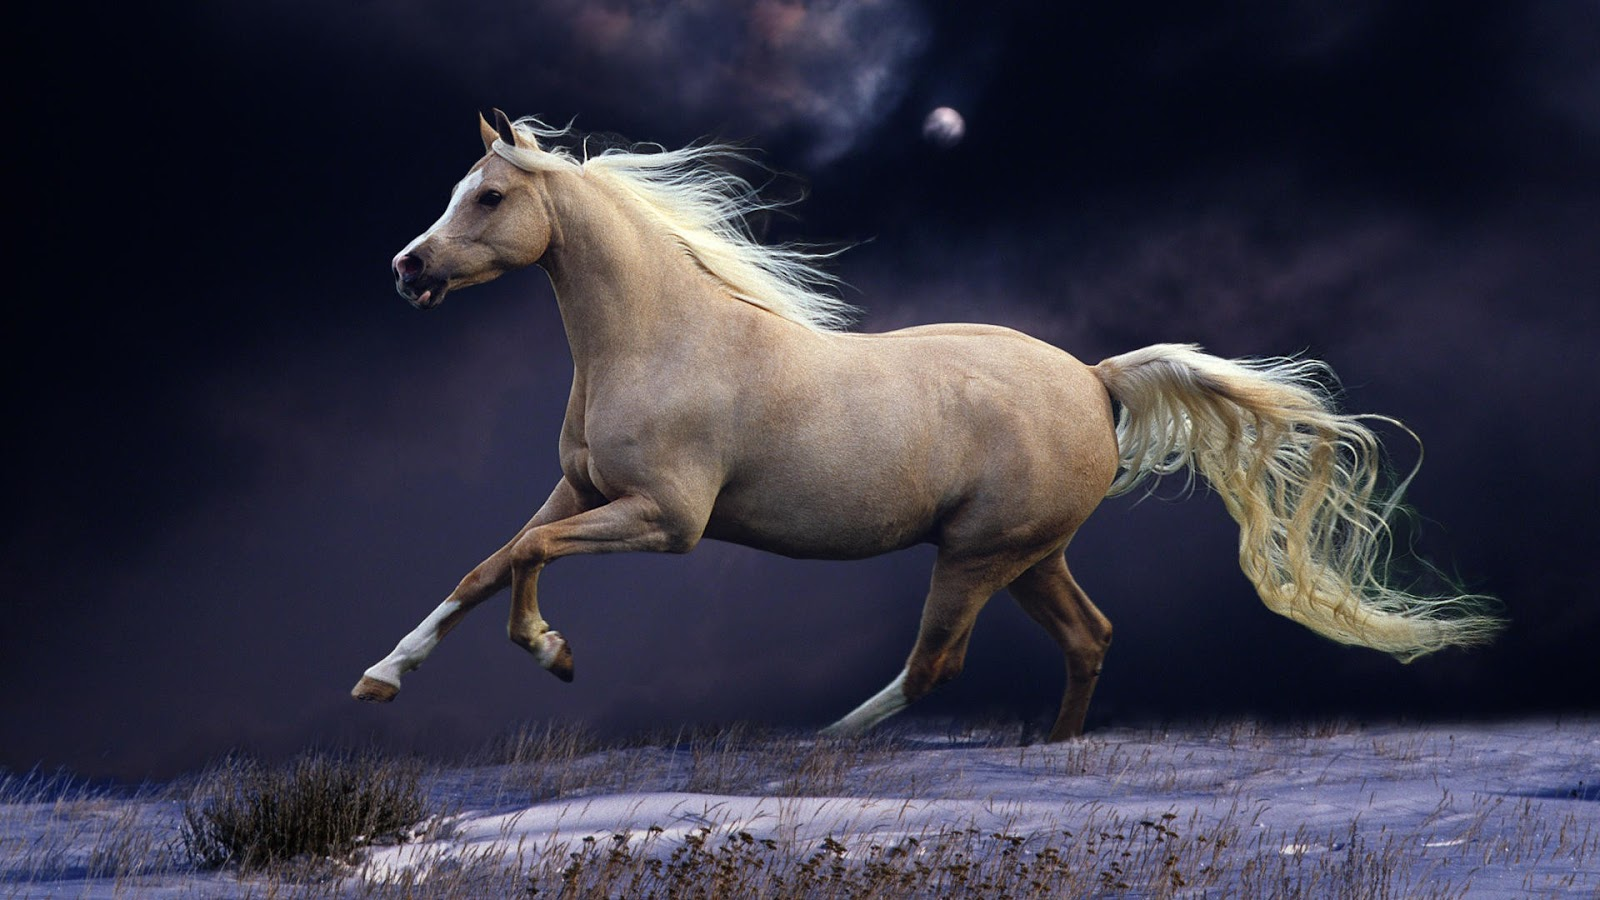 Free Latest Full Hd Quality Desktop Wallpapers Download -1388